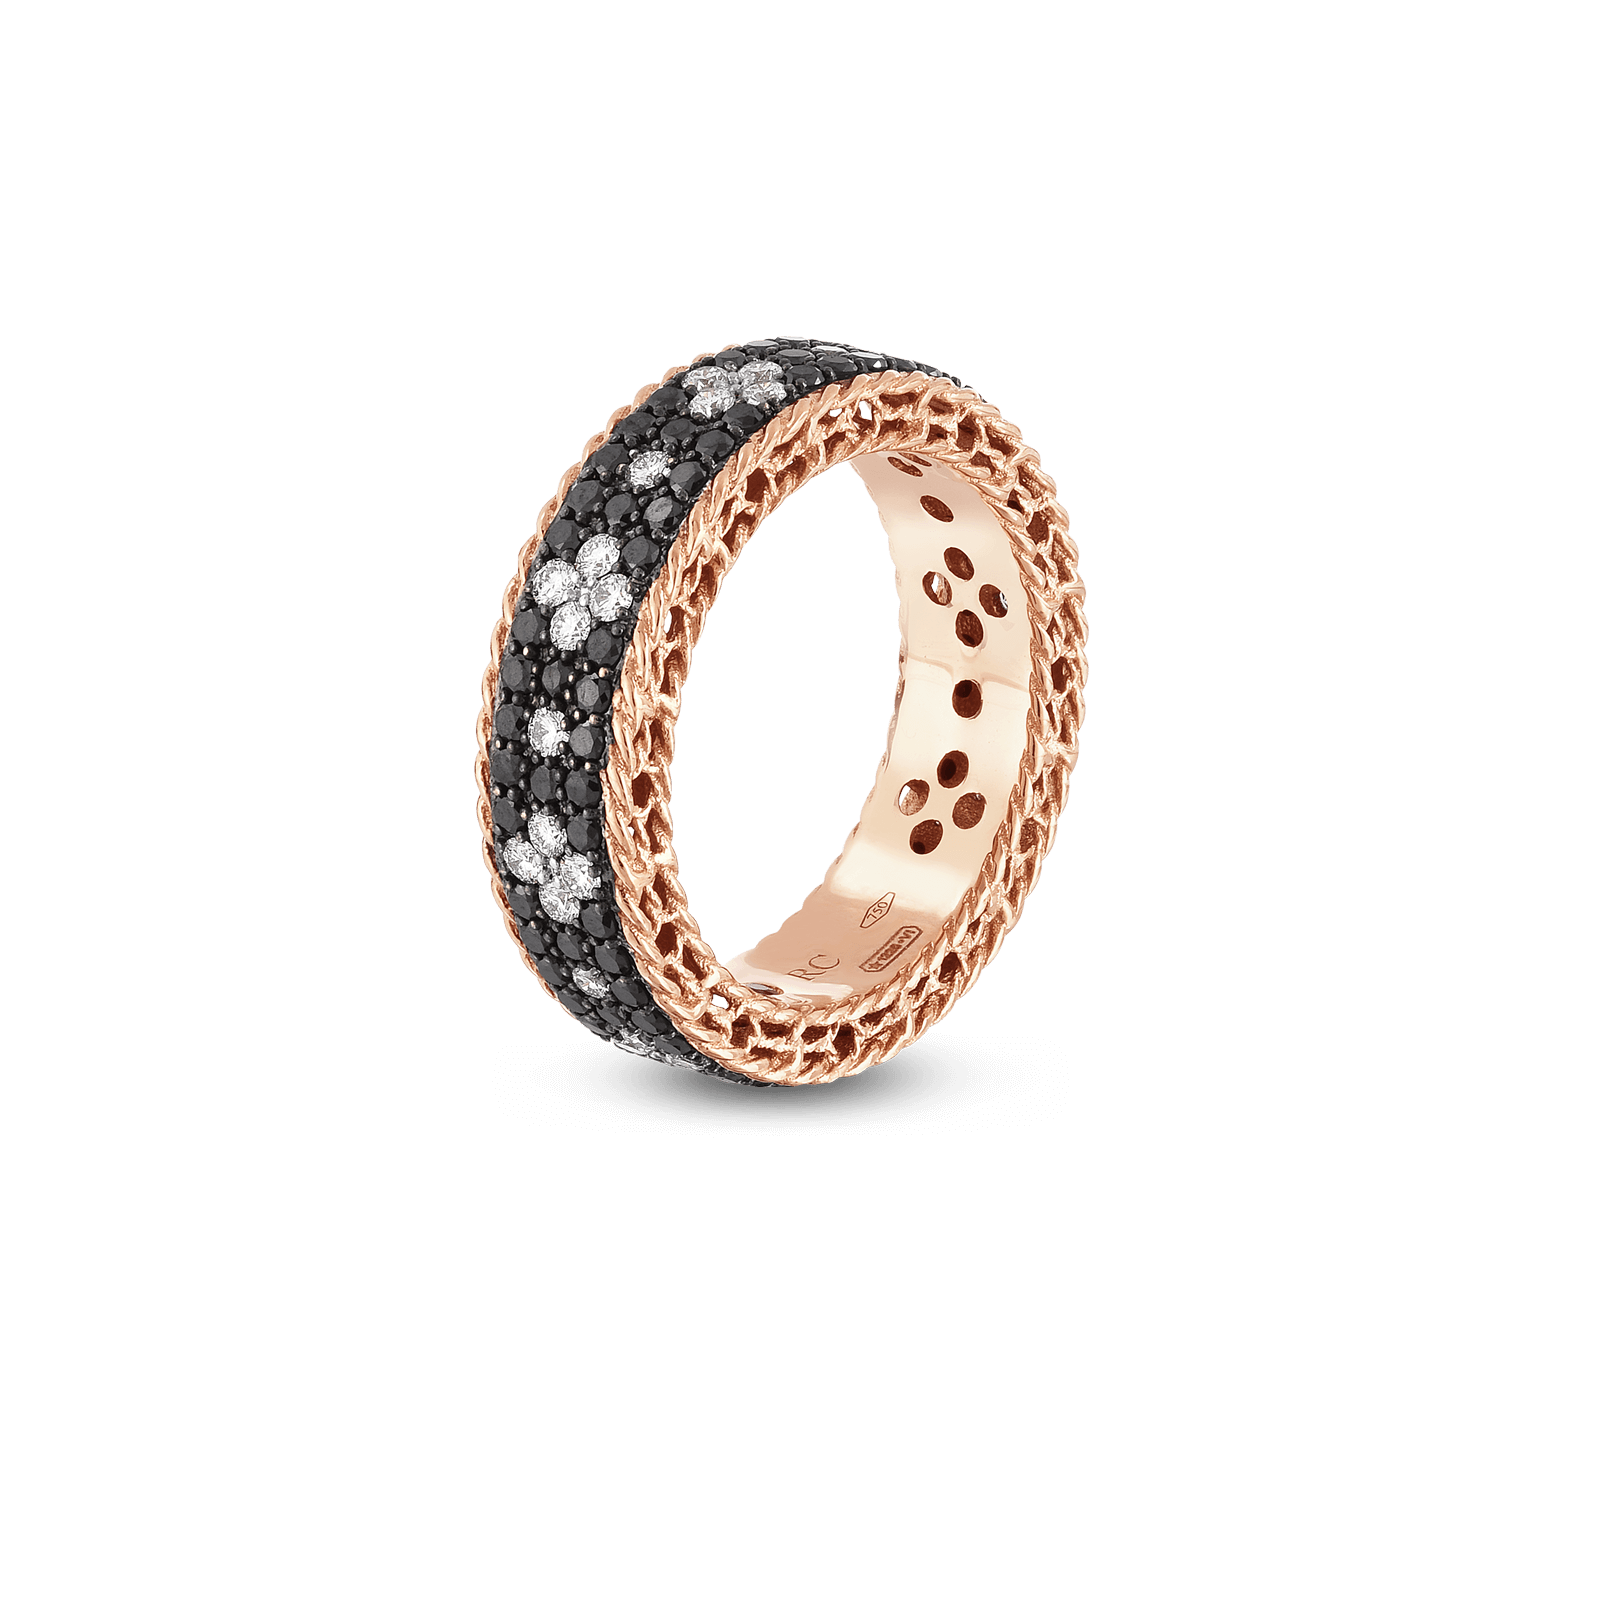 Roberto-Coin-18k-rose-gold-Ring with Fleur de Lis Diamonds-8882253AX65Xalt